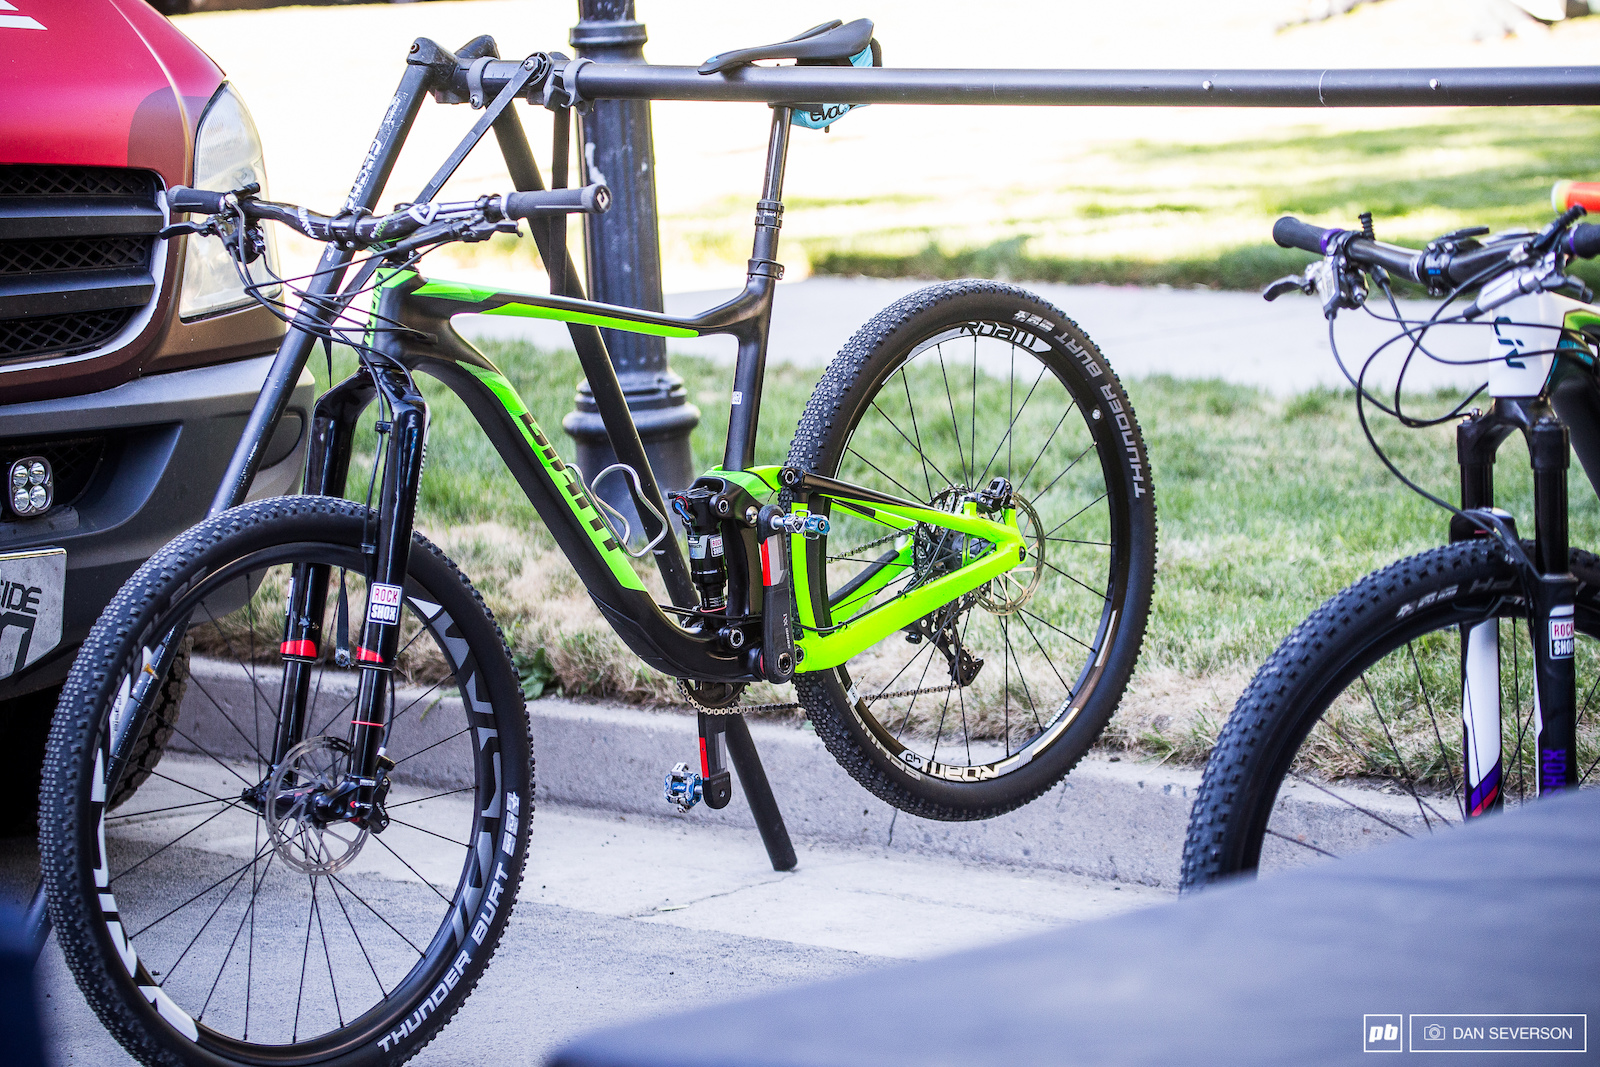 Could this slick looking black and green machine be something new from the good folks over at Giant I guess we ll just have to wait and see.